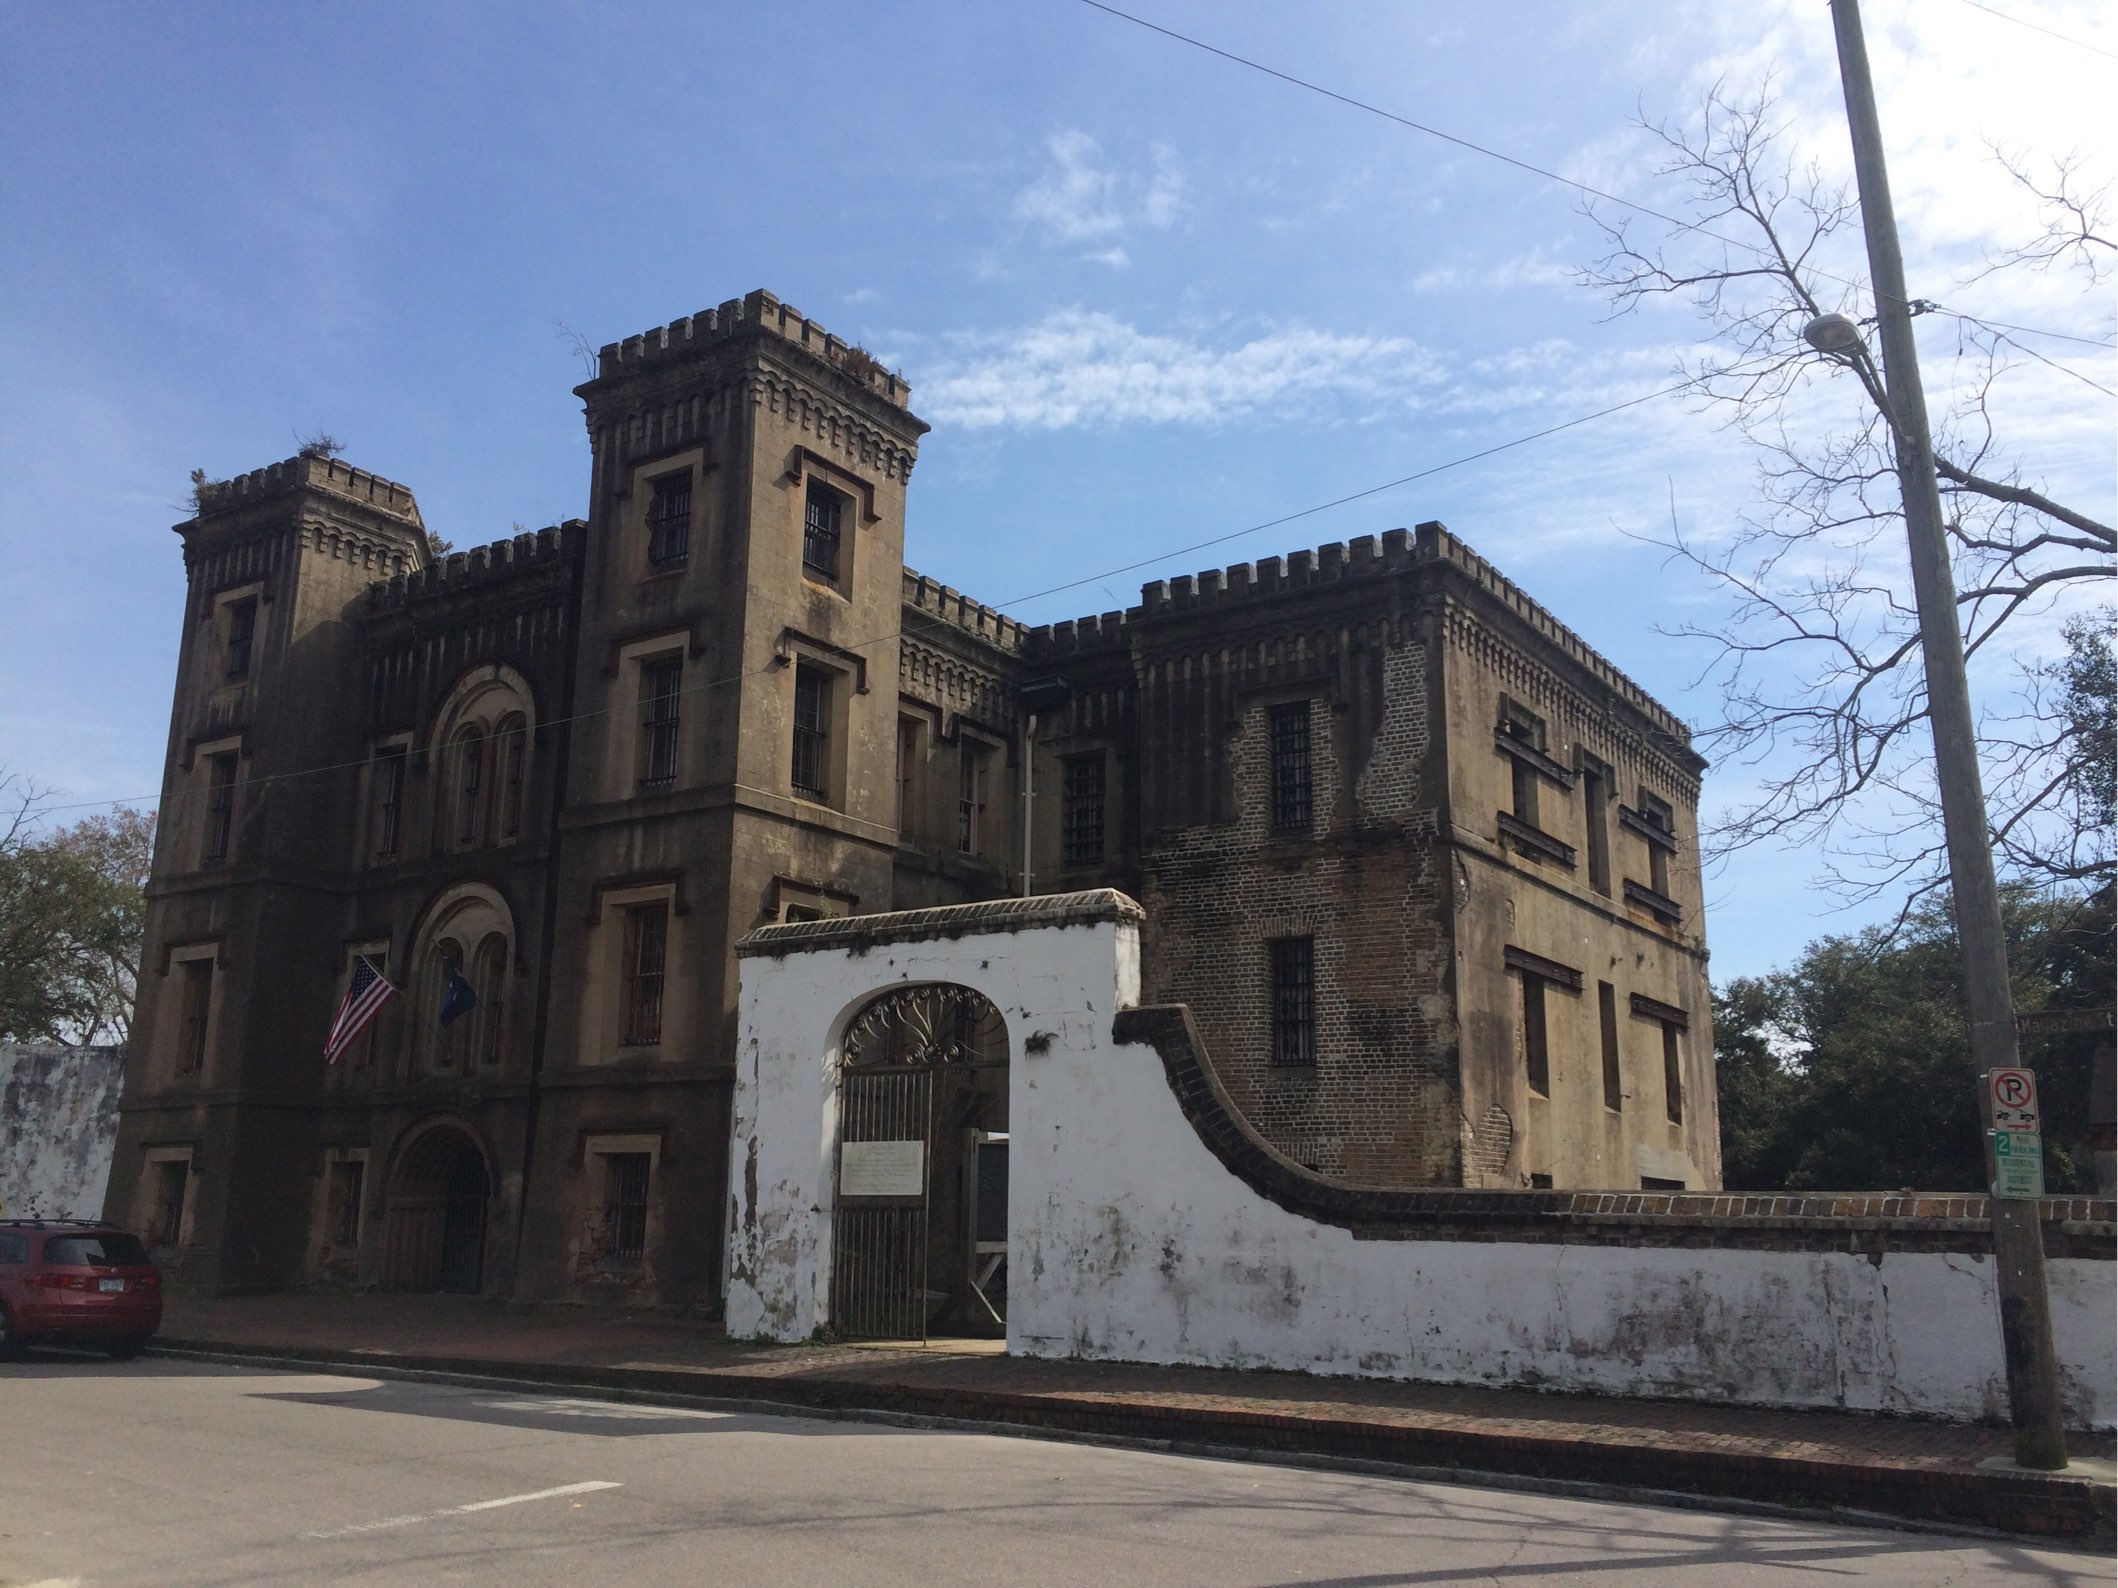 View of Old City Jail from the intersection of Magazine & wilson street